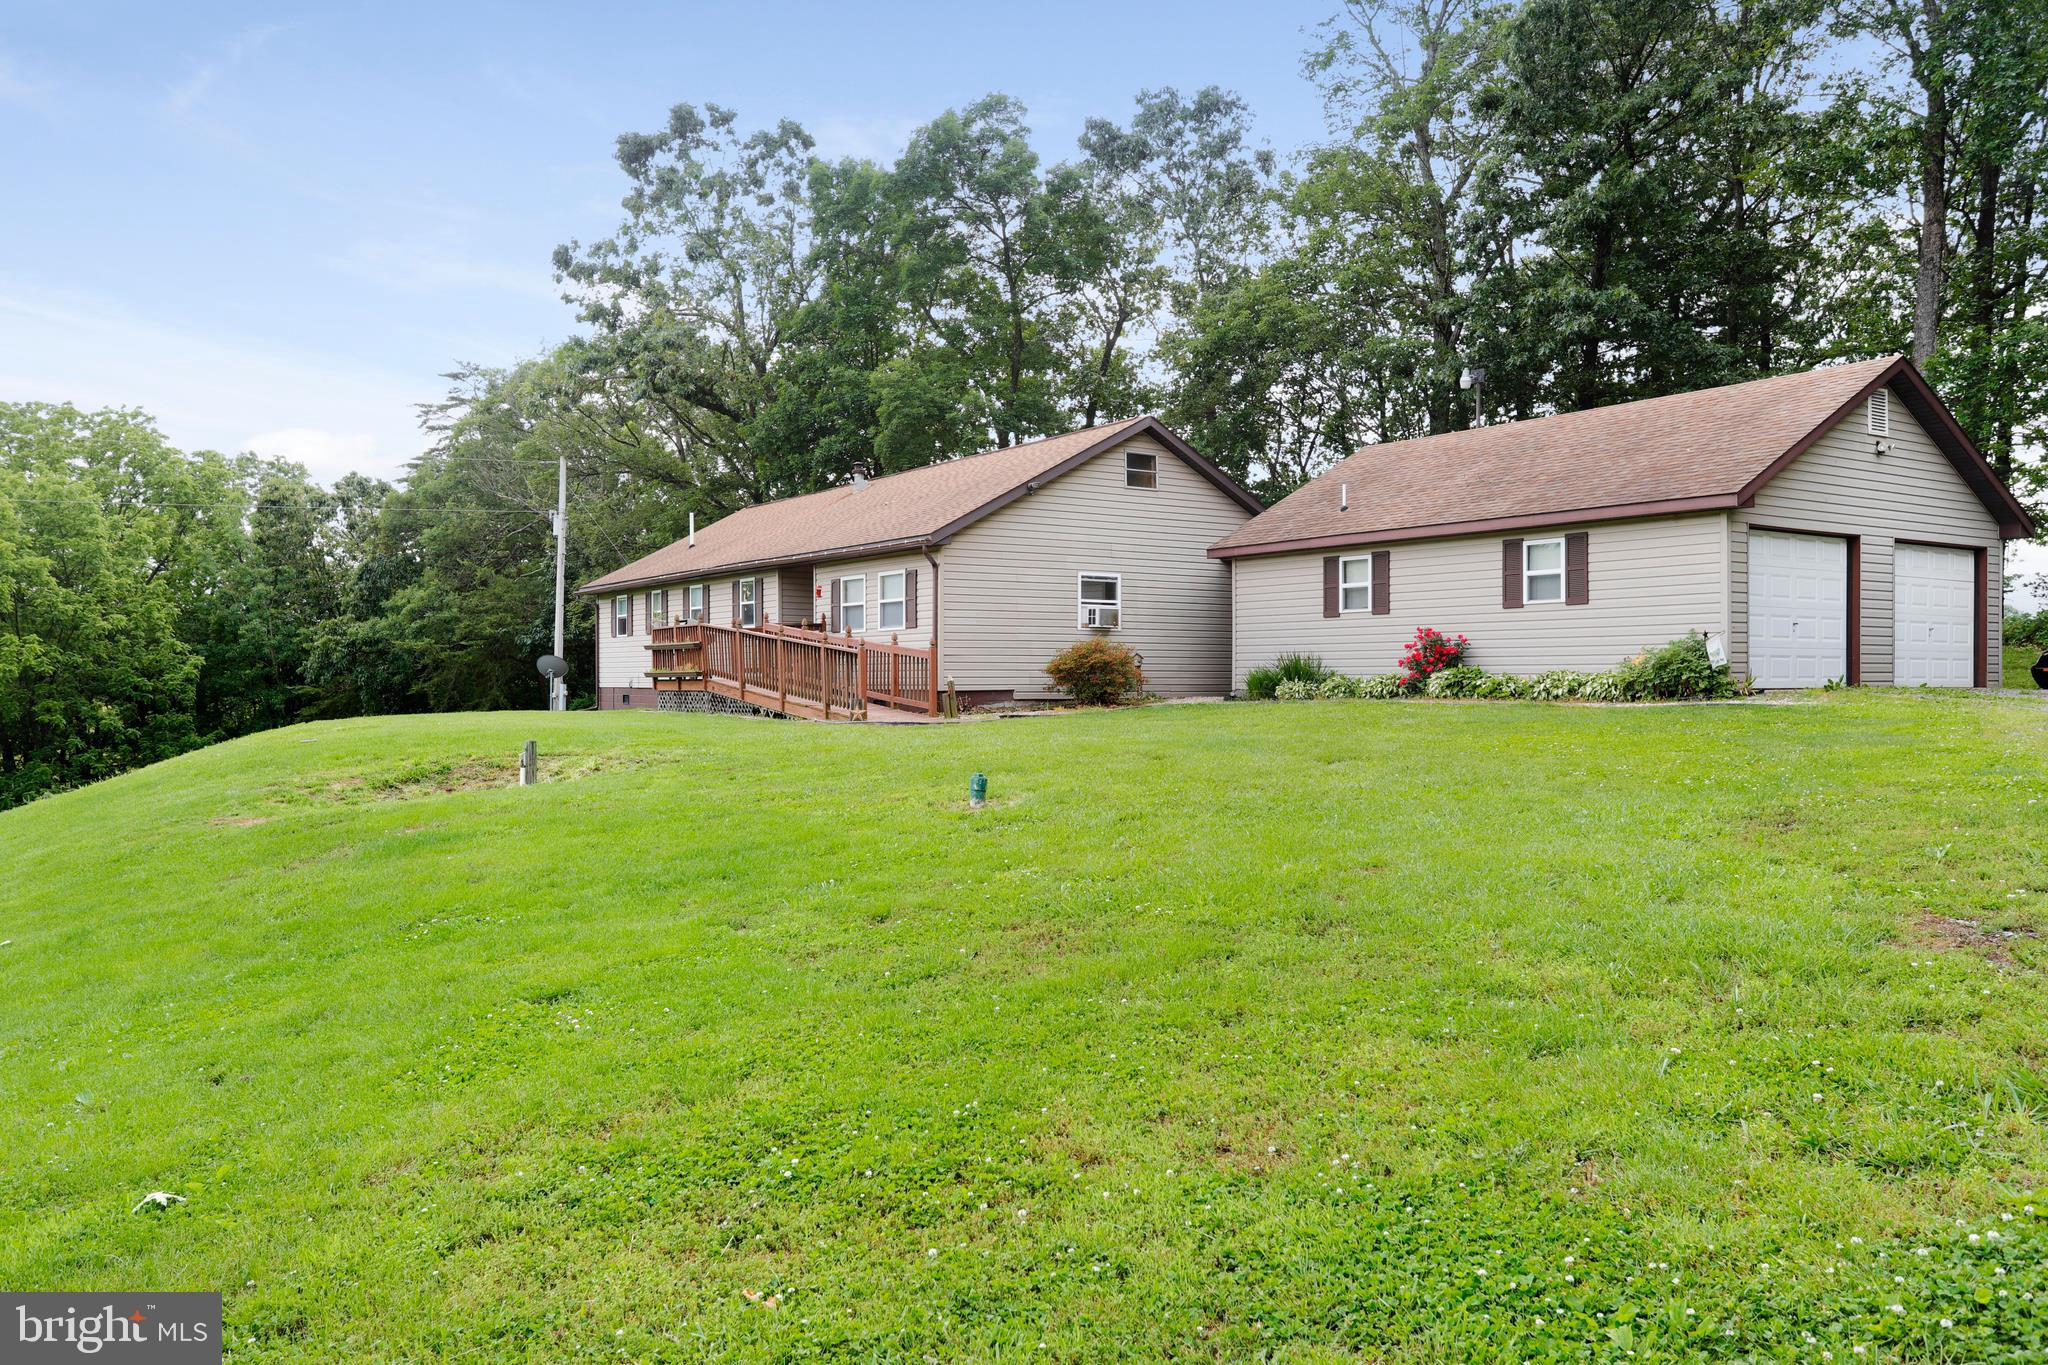 4937 PLEASANT RIDGE ROAD, NEEDMORE, PA 17238